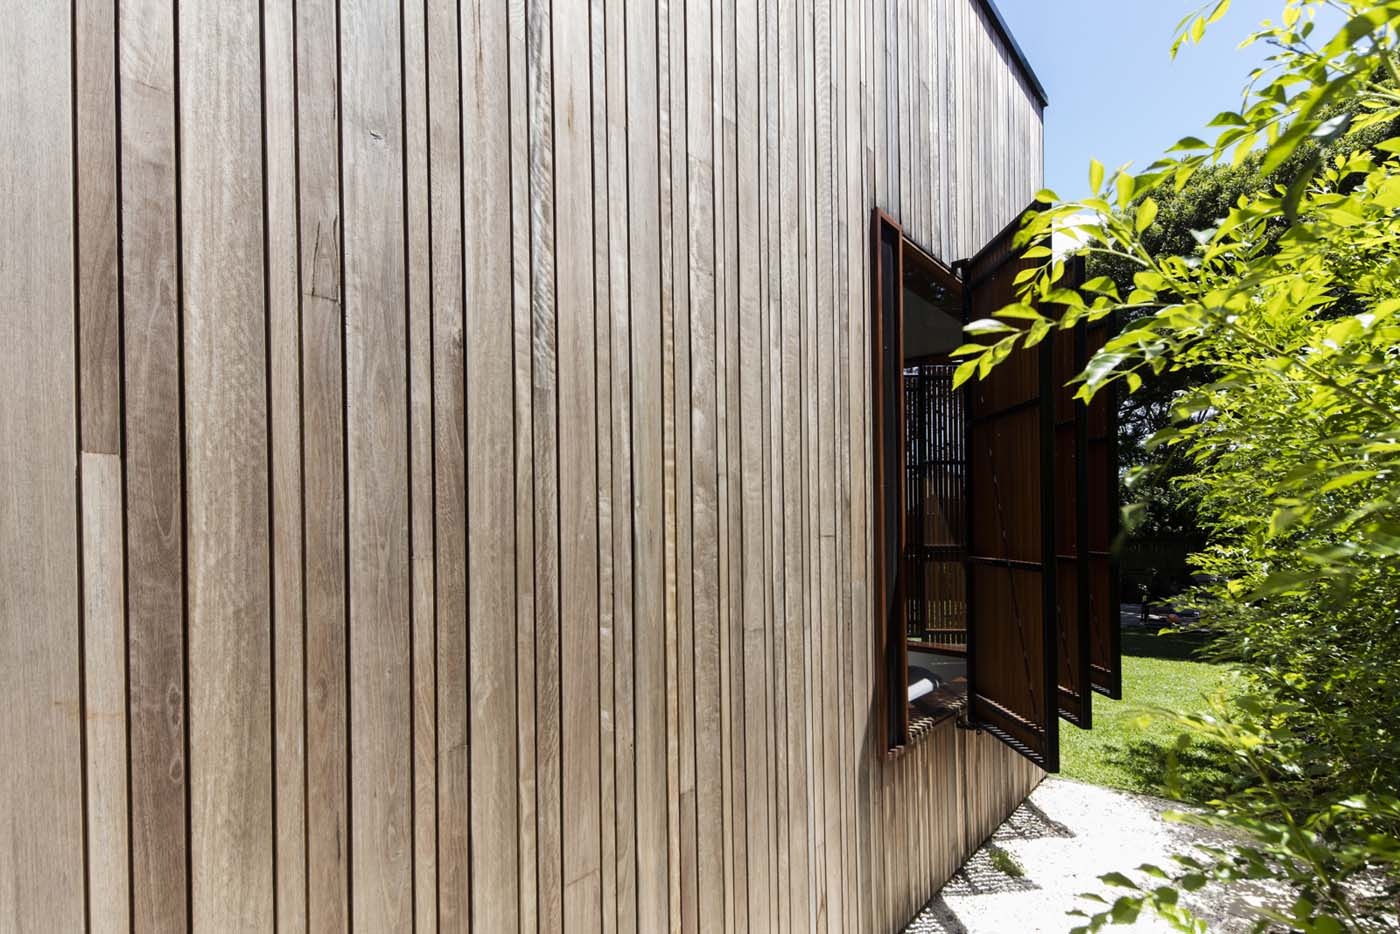 Sung Dobson house by Sam Crawford Architects, Sydney. Timber casement shutters.